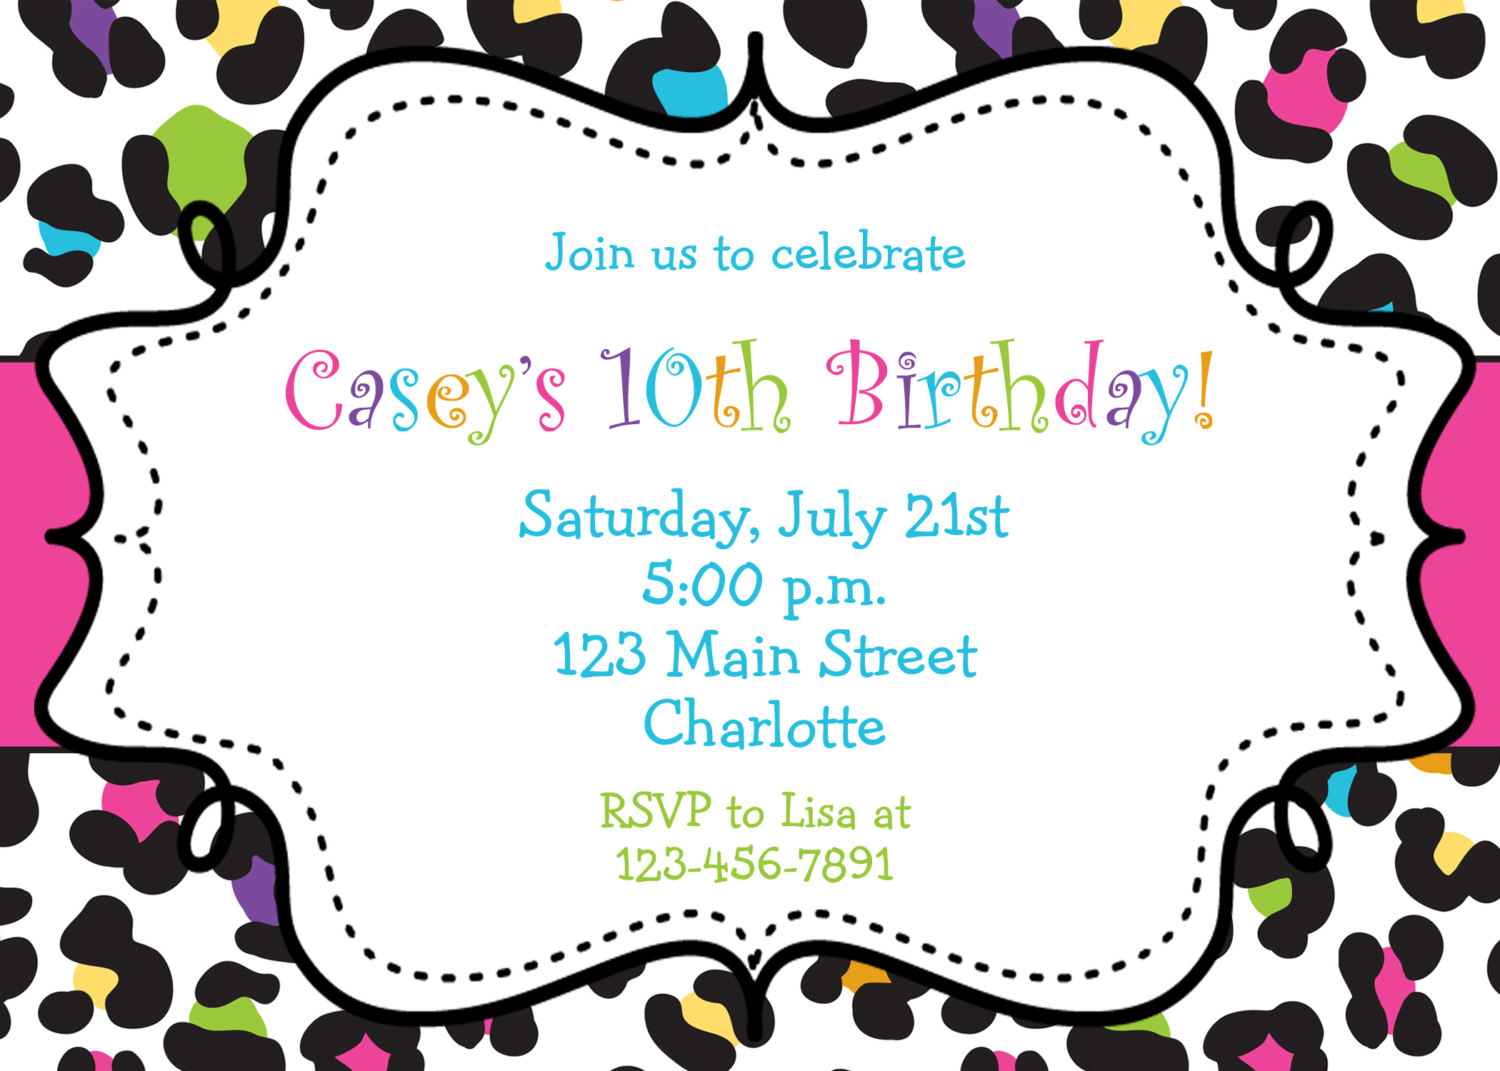 free birthday party invitations templates : ukrobstep, Party invitations